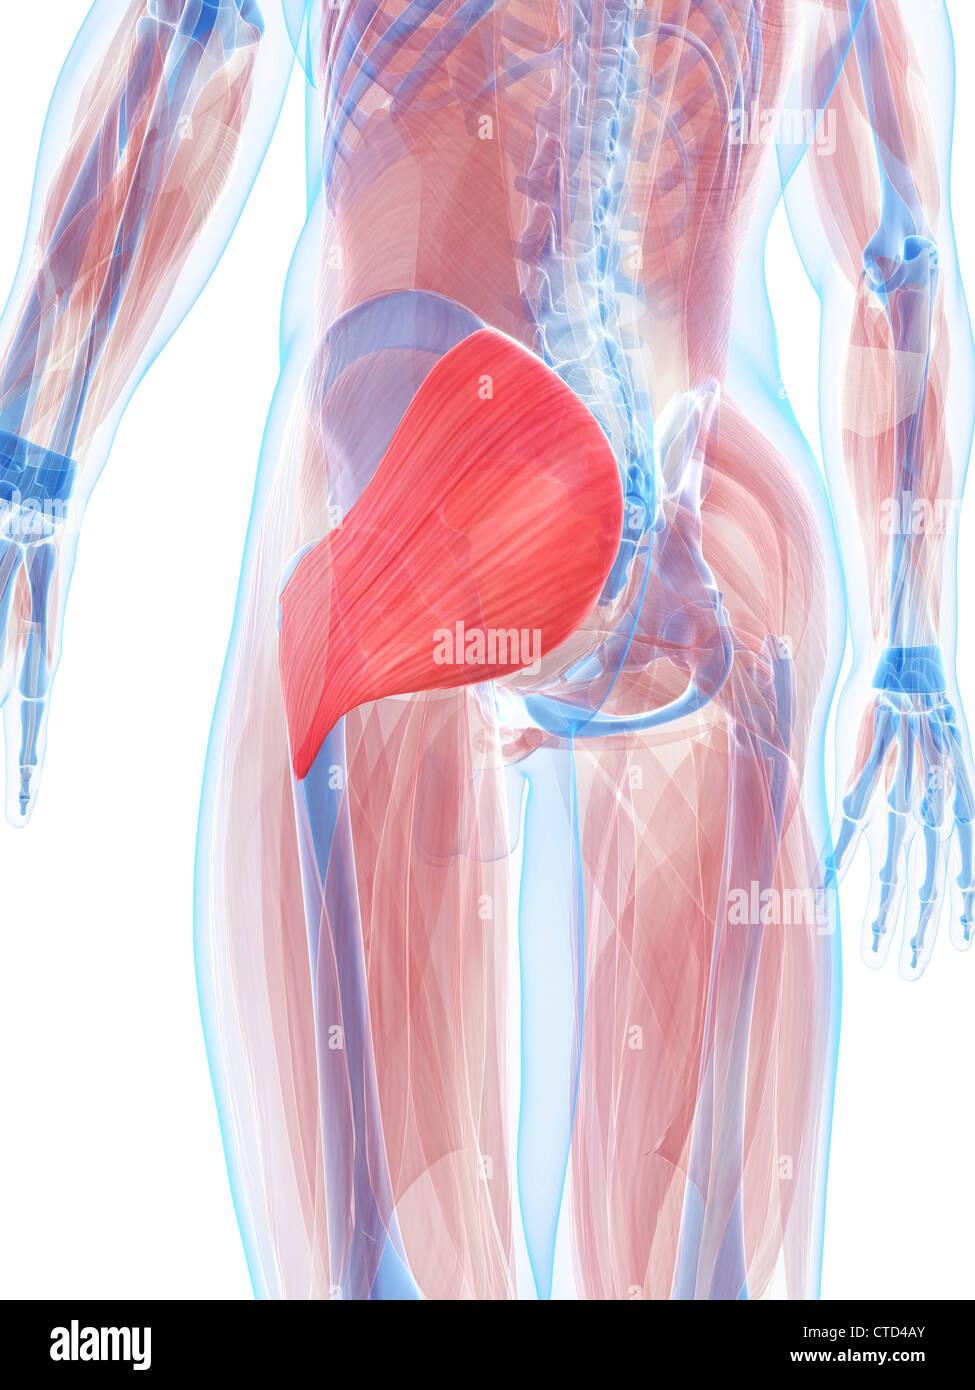 Gluteus maximus muscle  artwork - Stock Image